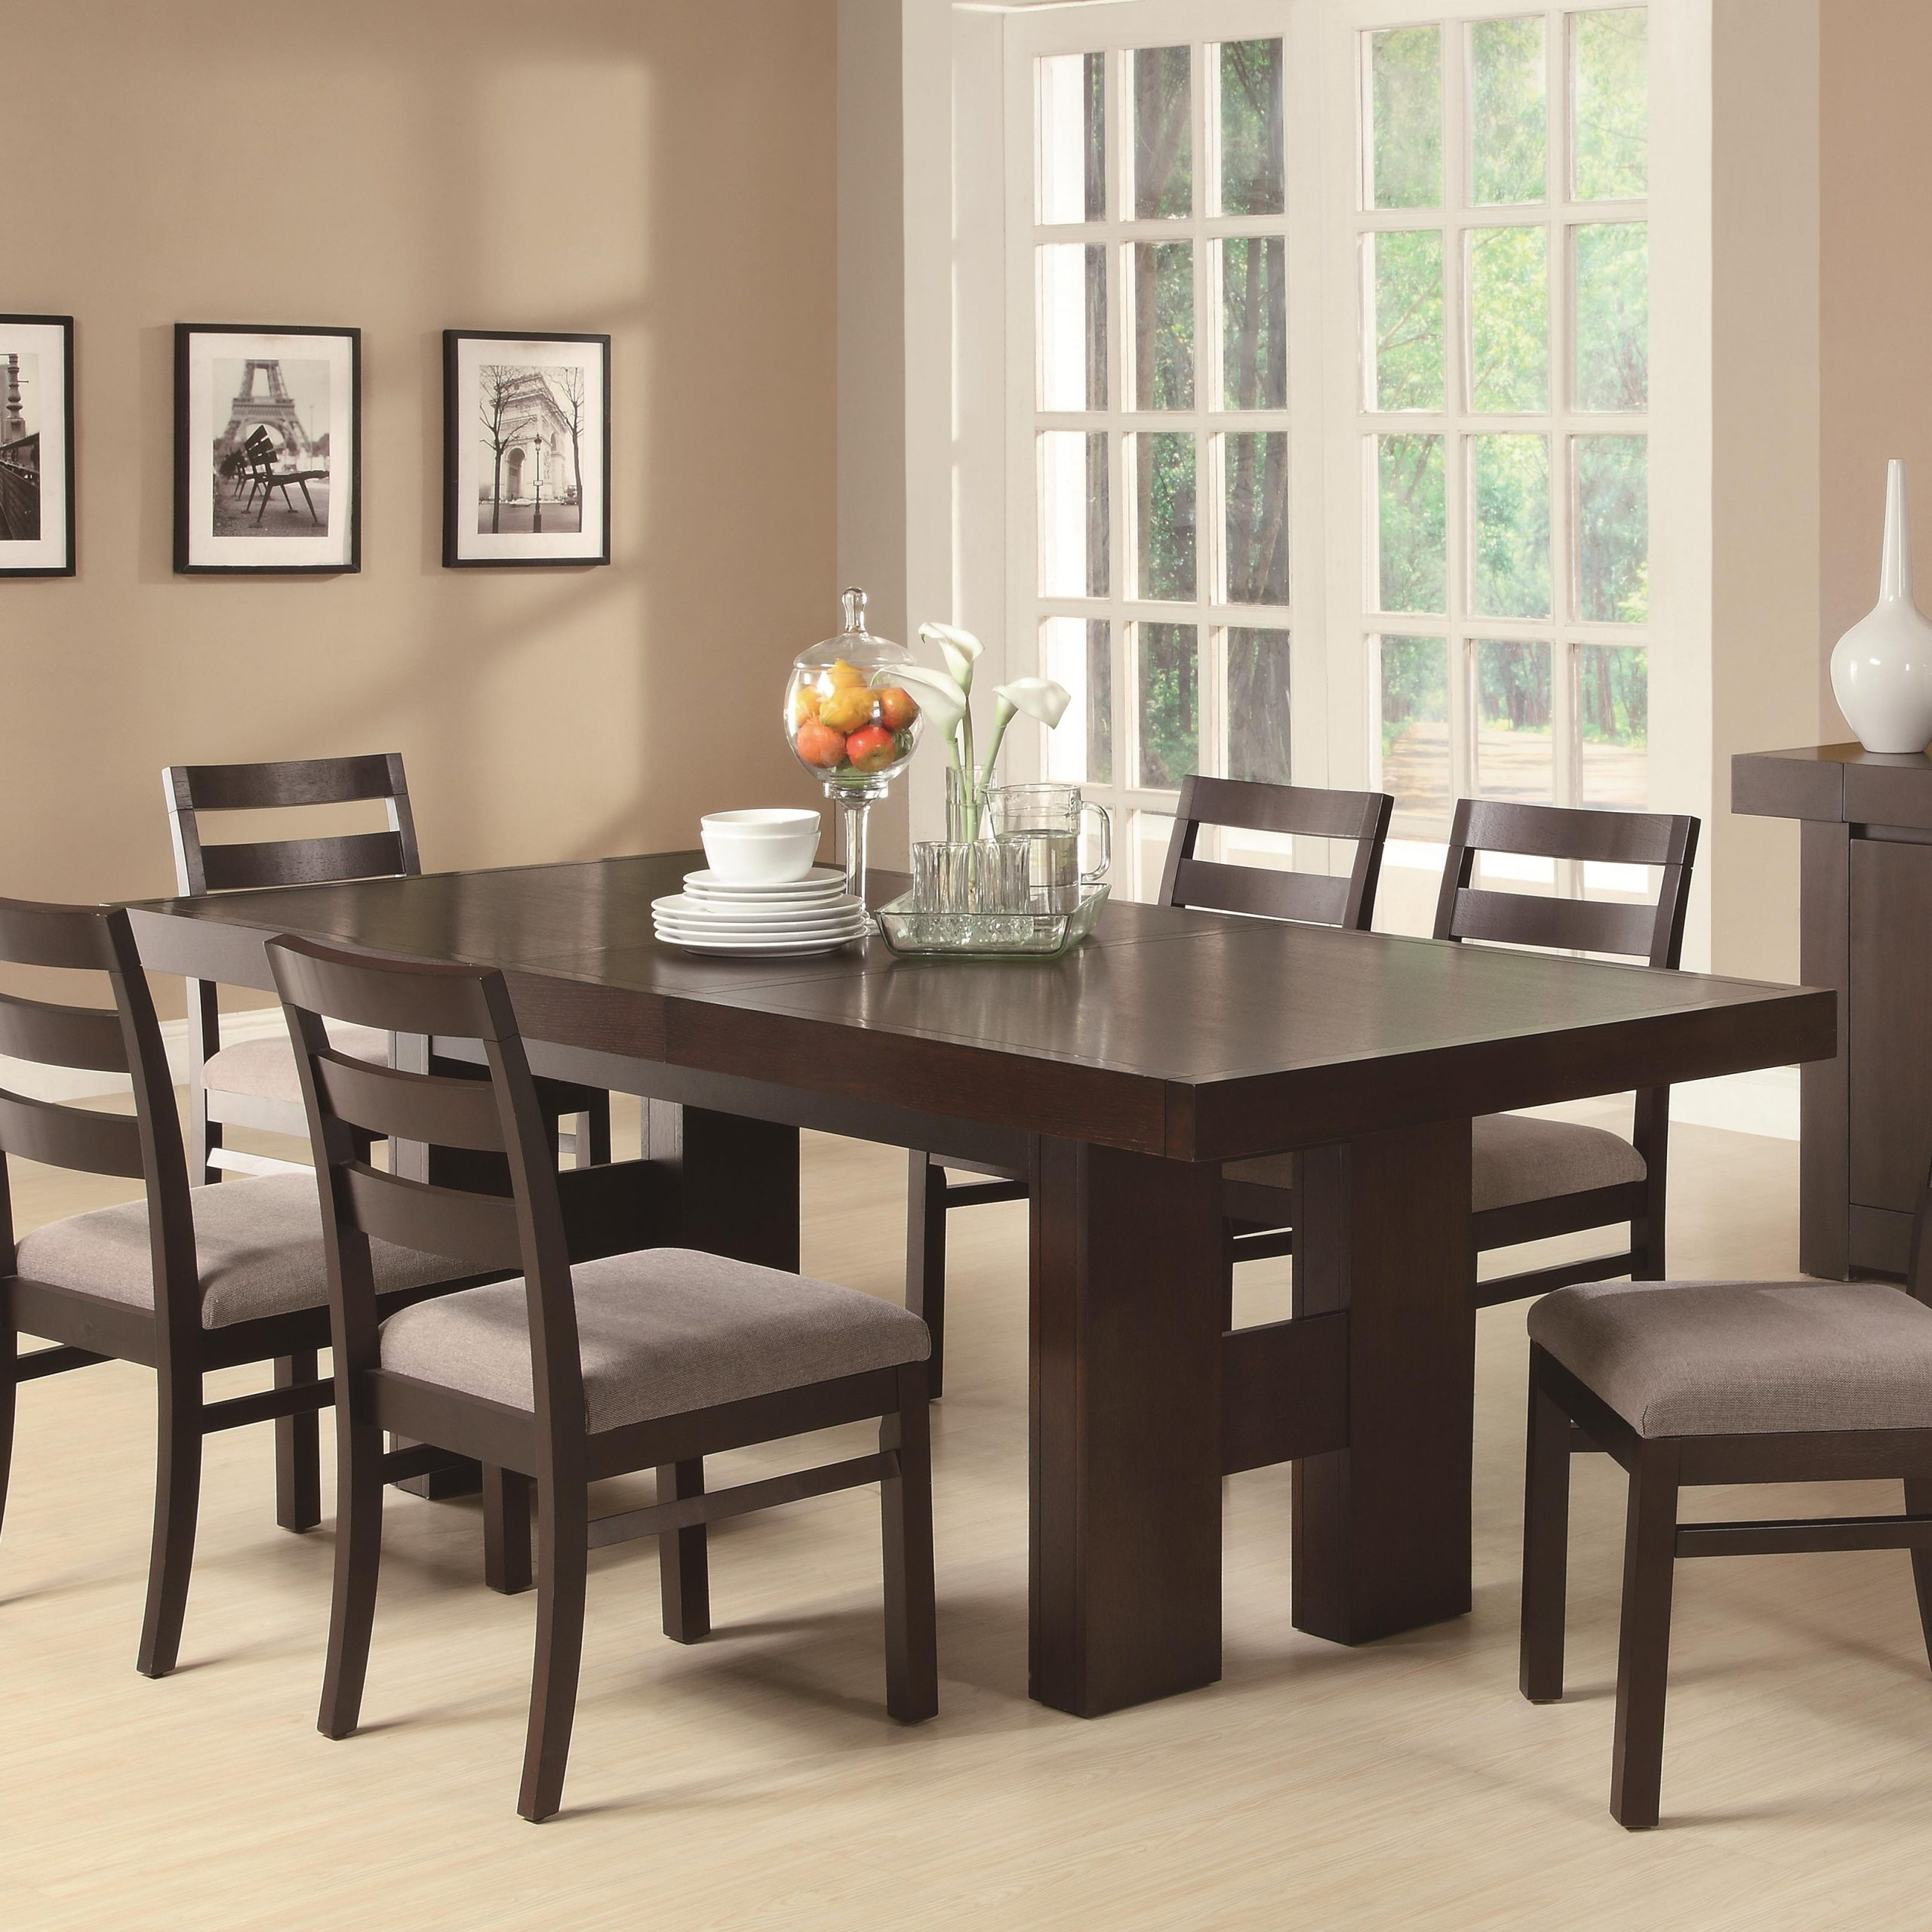 The Classy Regarding Cappuccino Finish Wood Classic Casual Dining Tables (View 26 of 30)